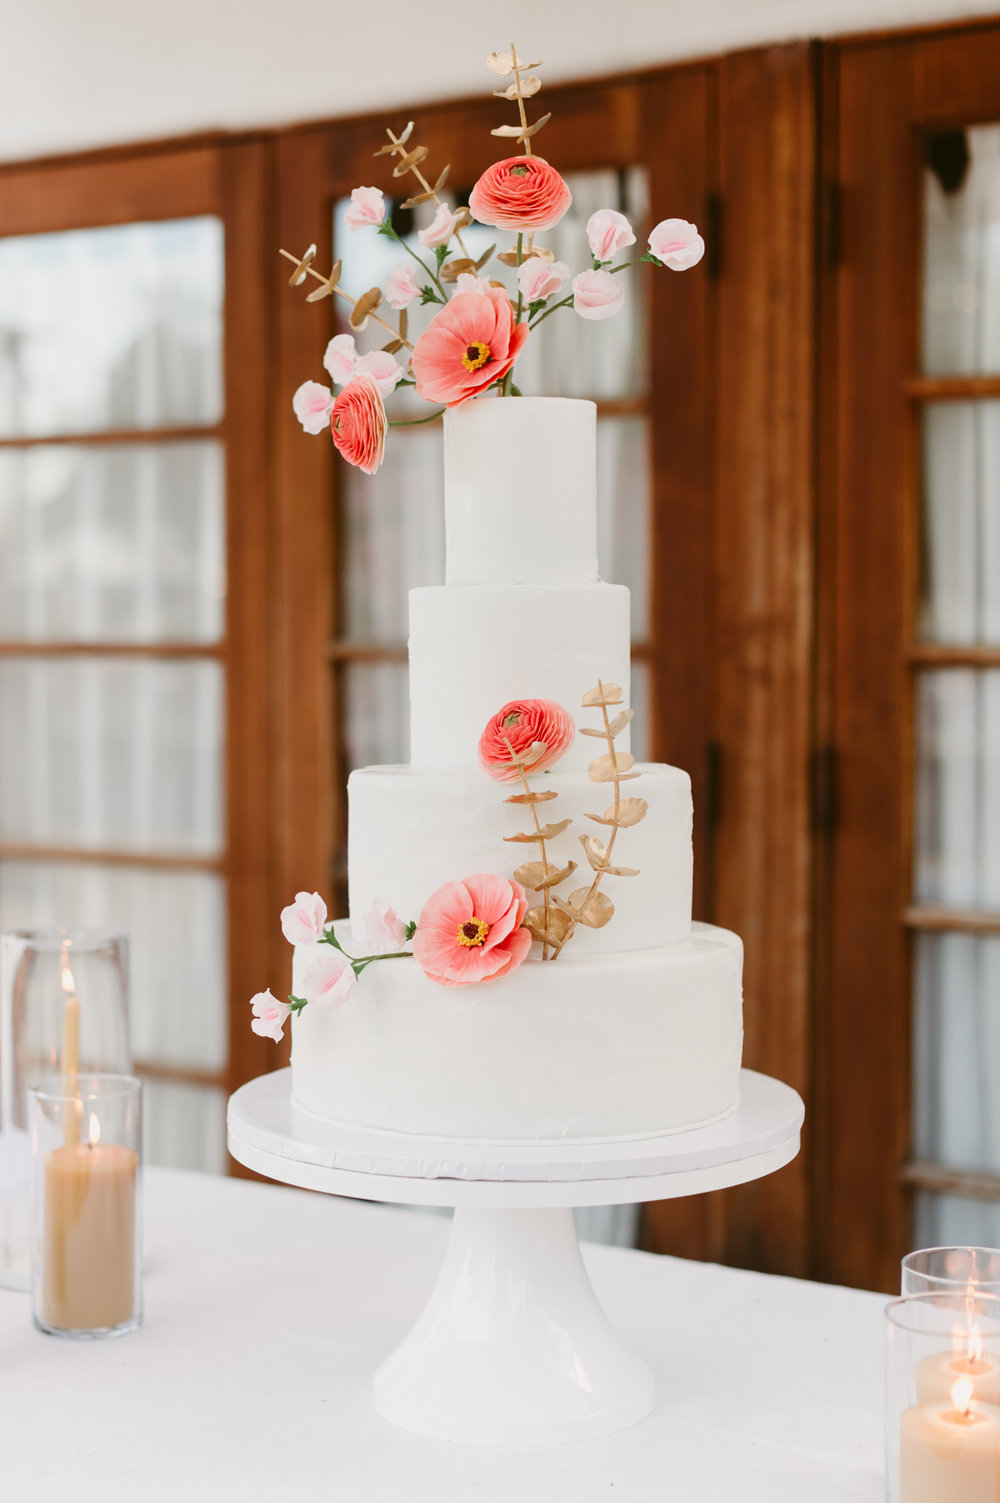 tiered wedding cake with sugar flowers